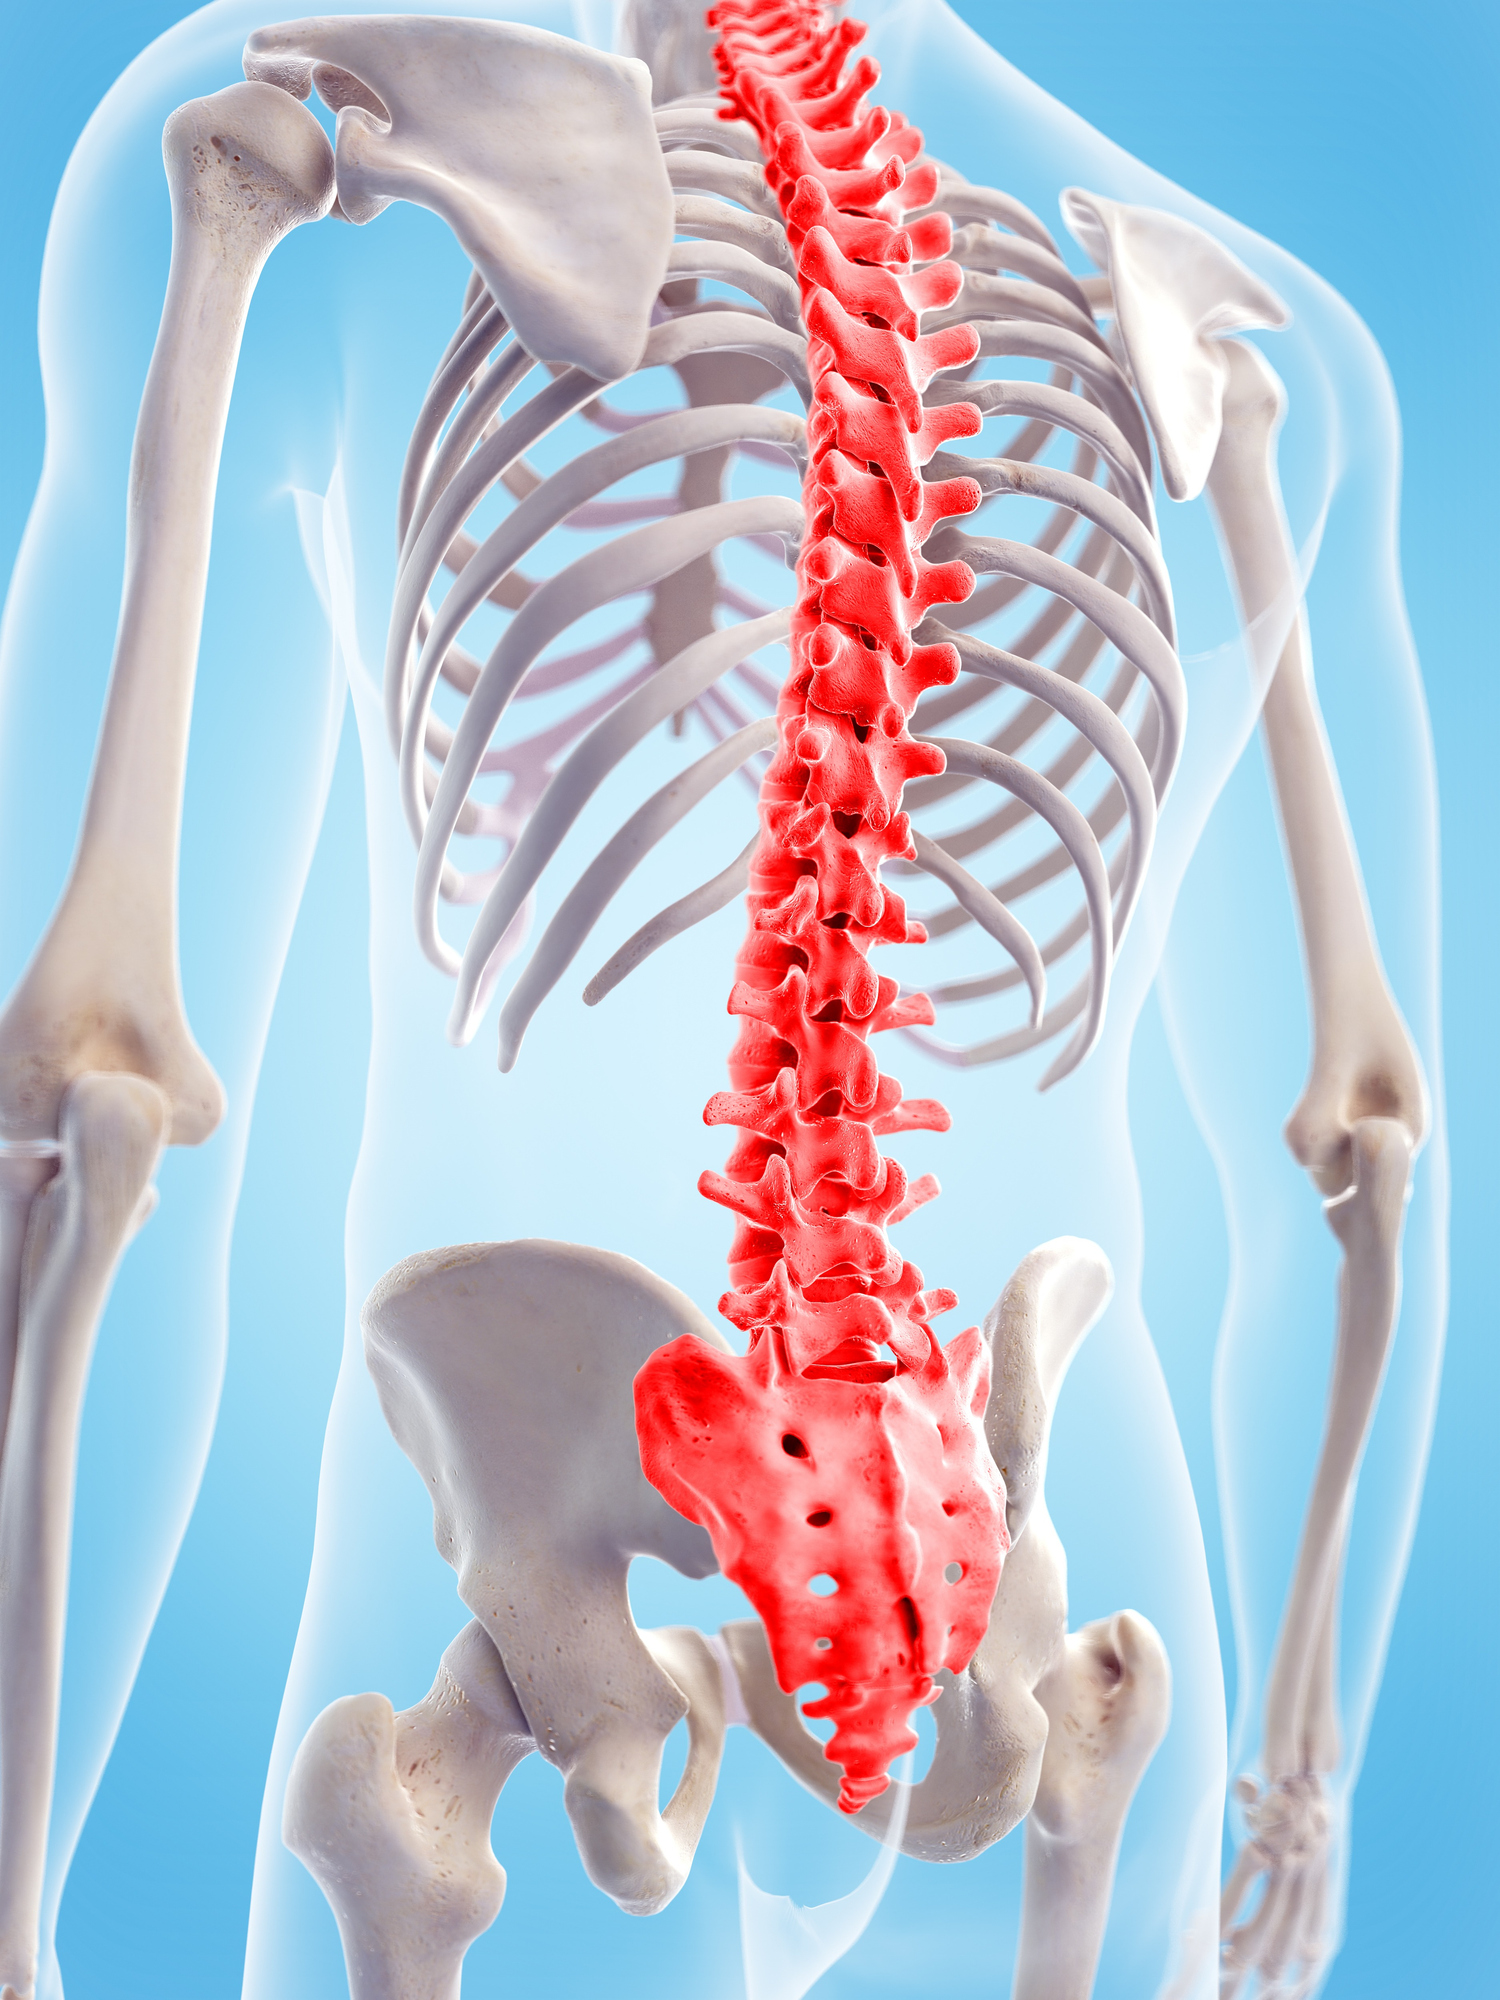 Human spinal pain, illustration shown to Little Elm Patient